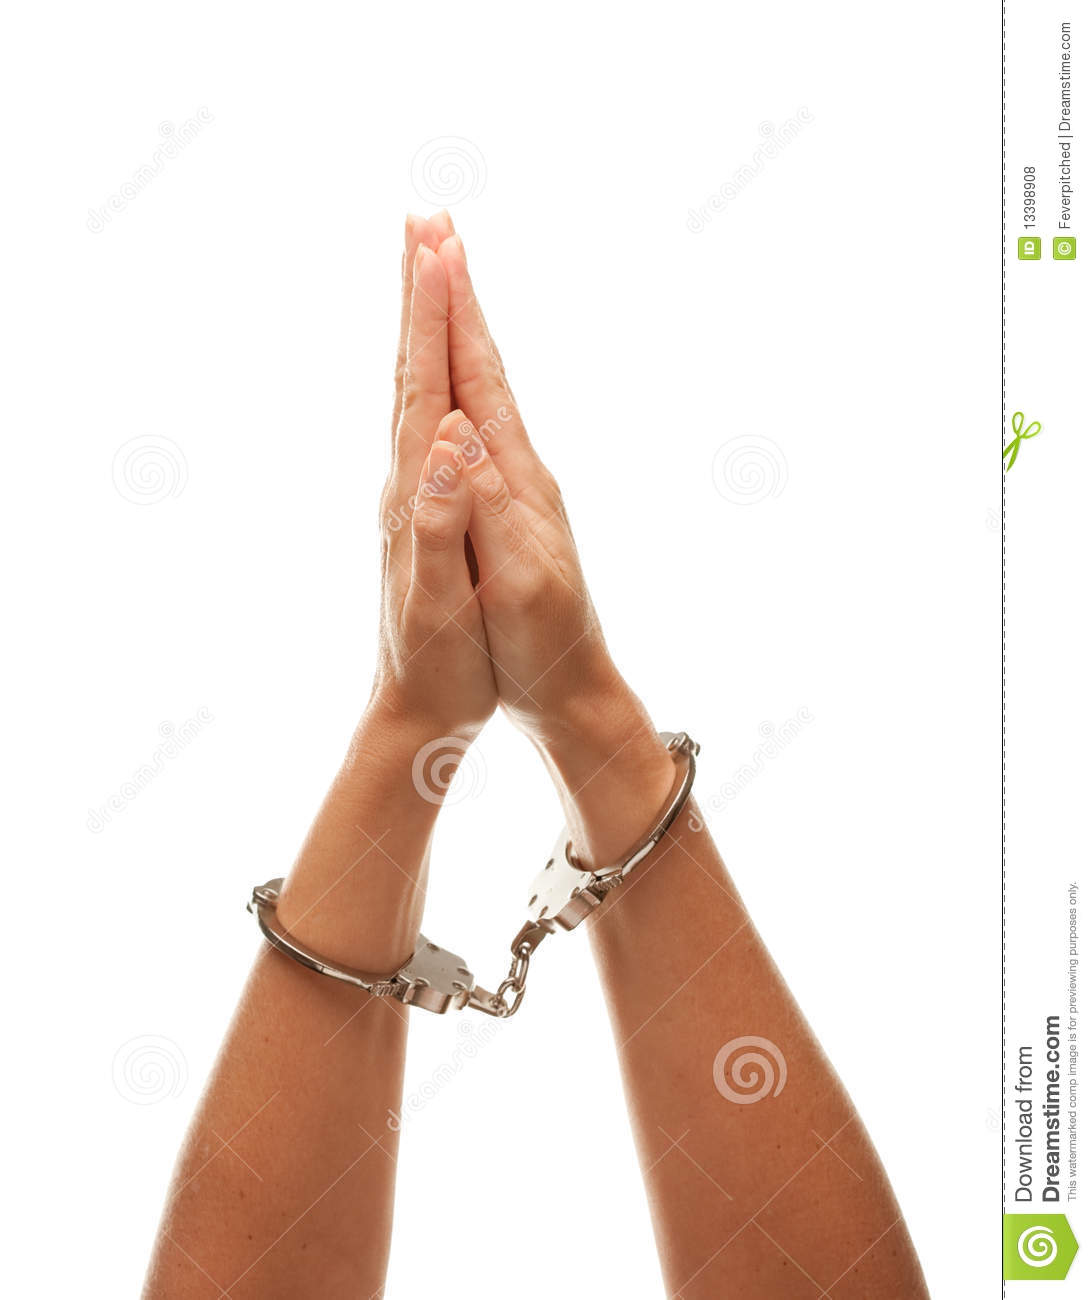 Handcuffed Woman Raising Hands in Air on White